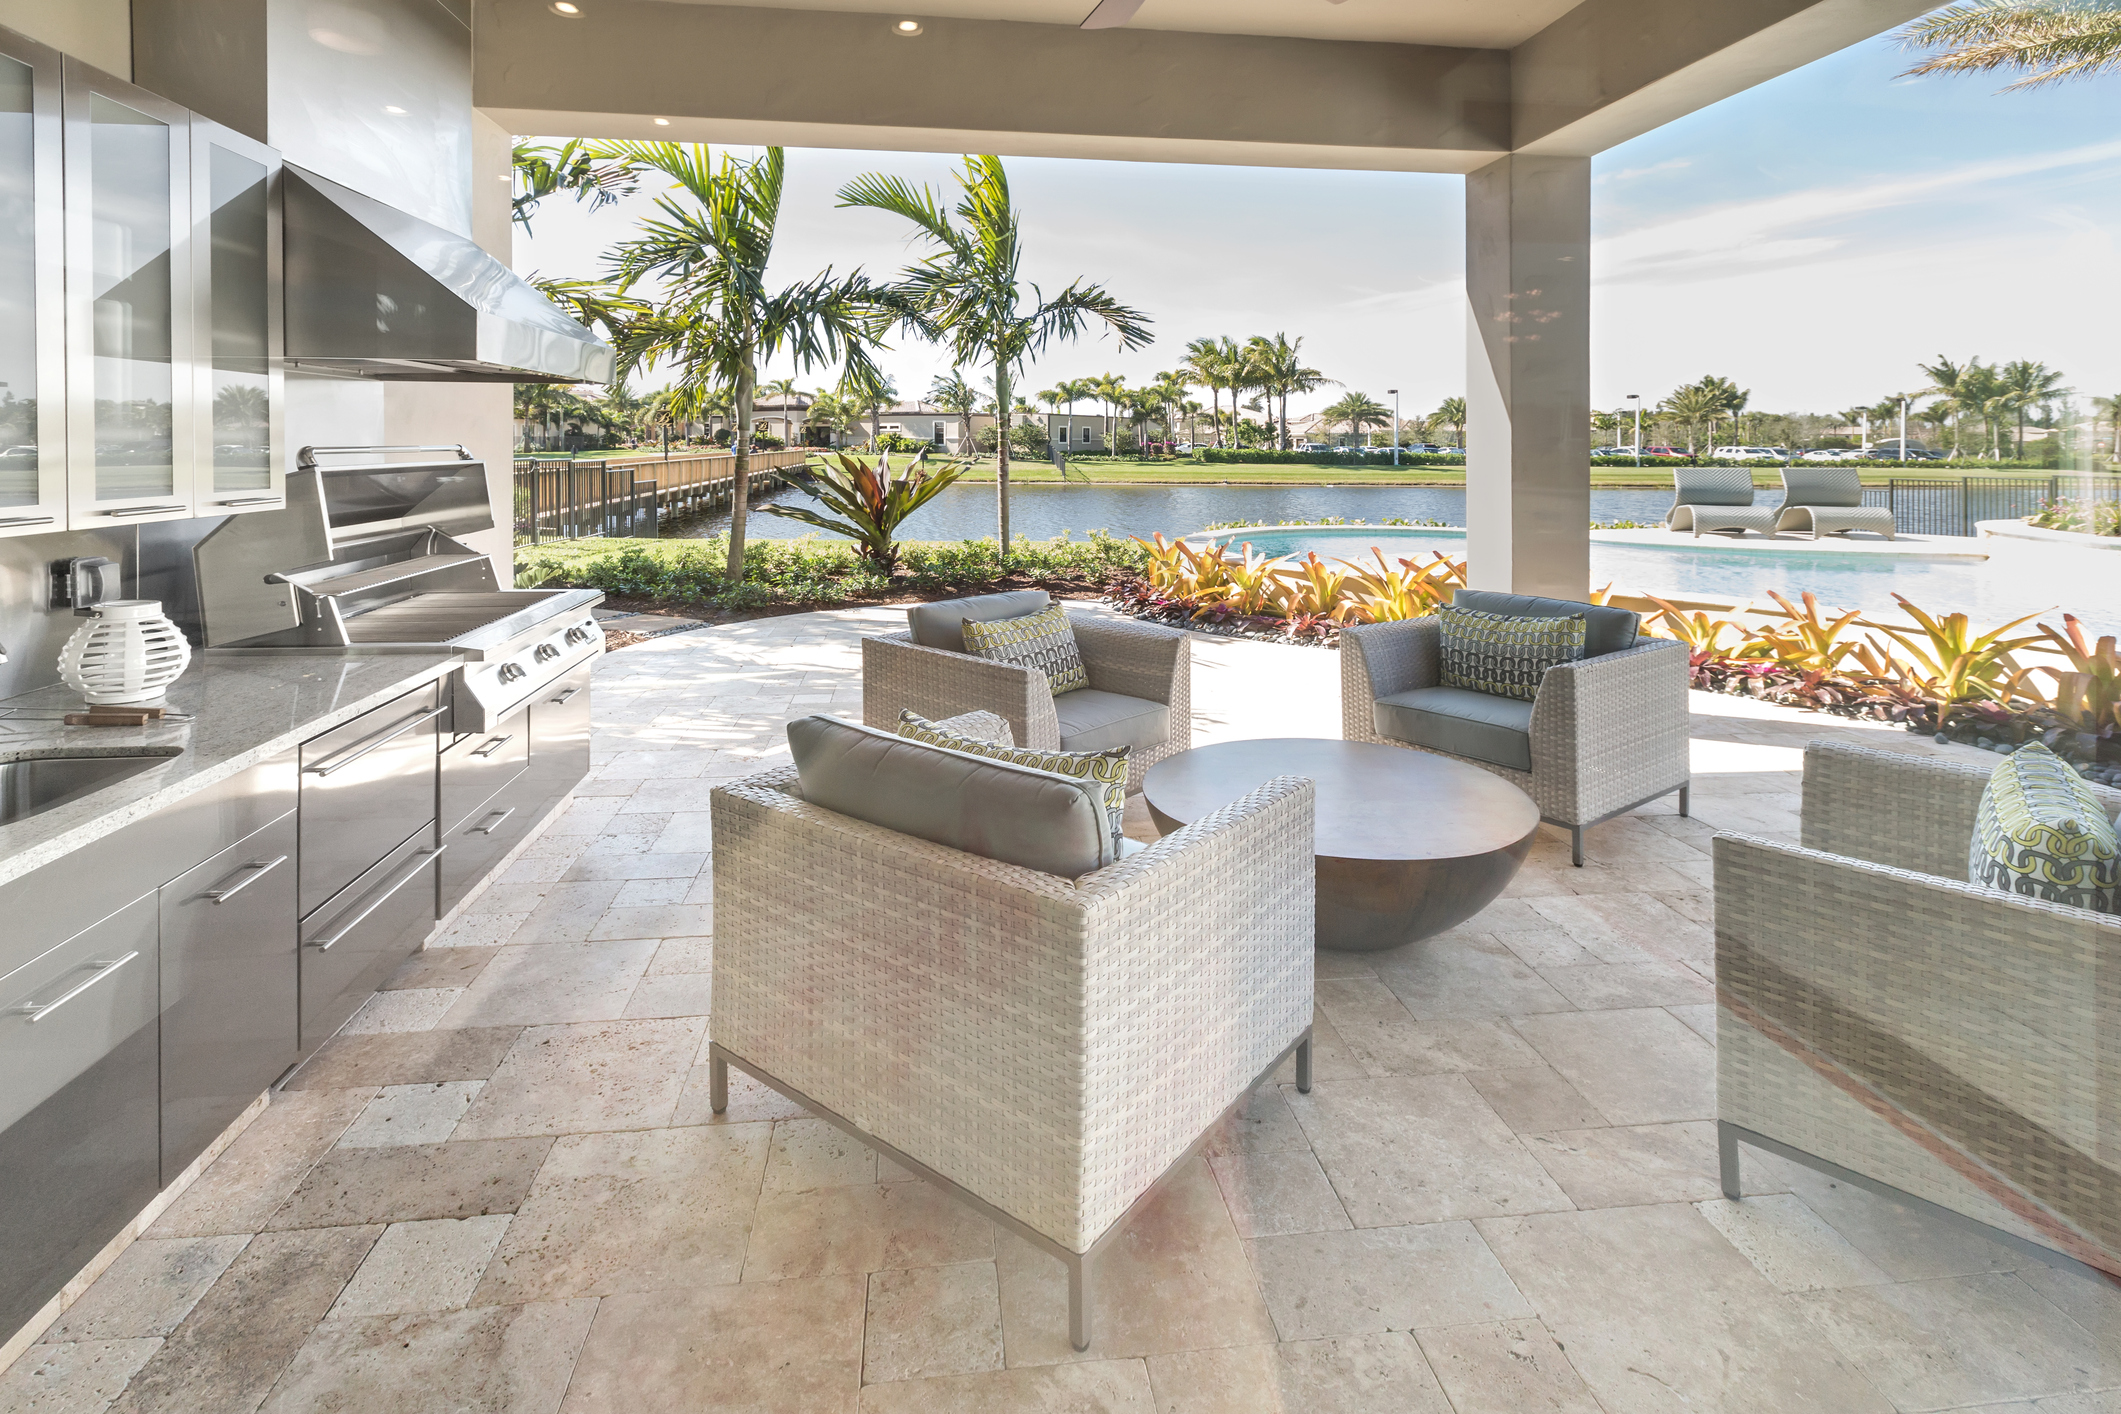 Tile and Grout Cleaning Clearwater Fl, Tile Cleaning Clearwater Fl, Grout Cleaning Clearwater Fl